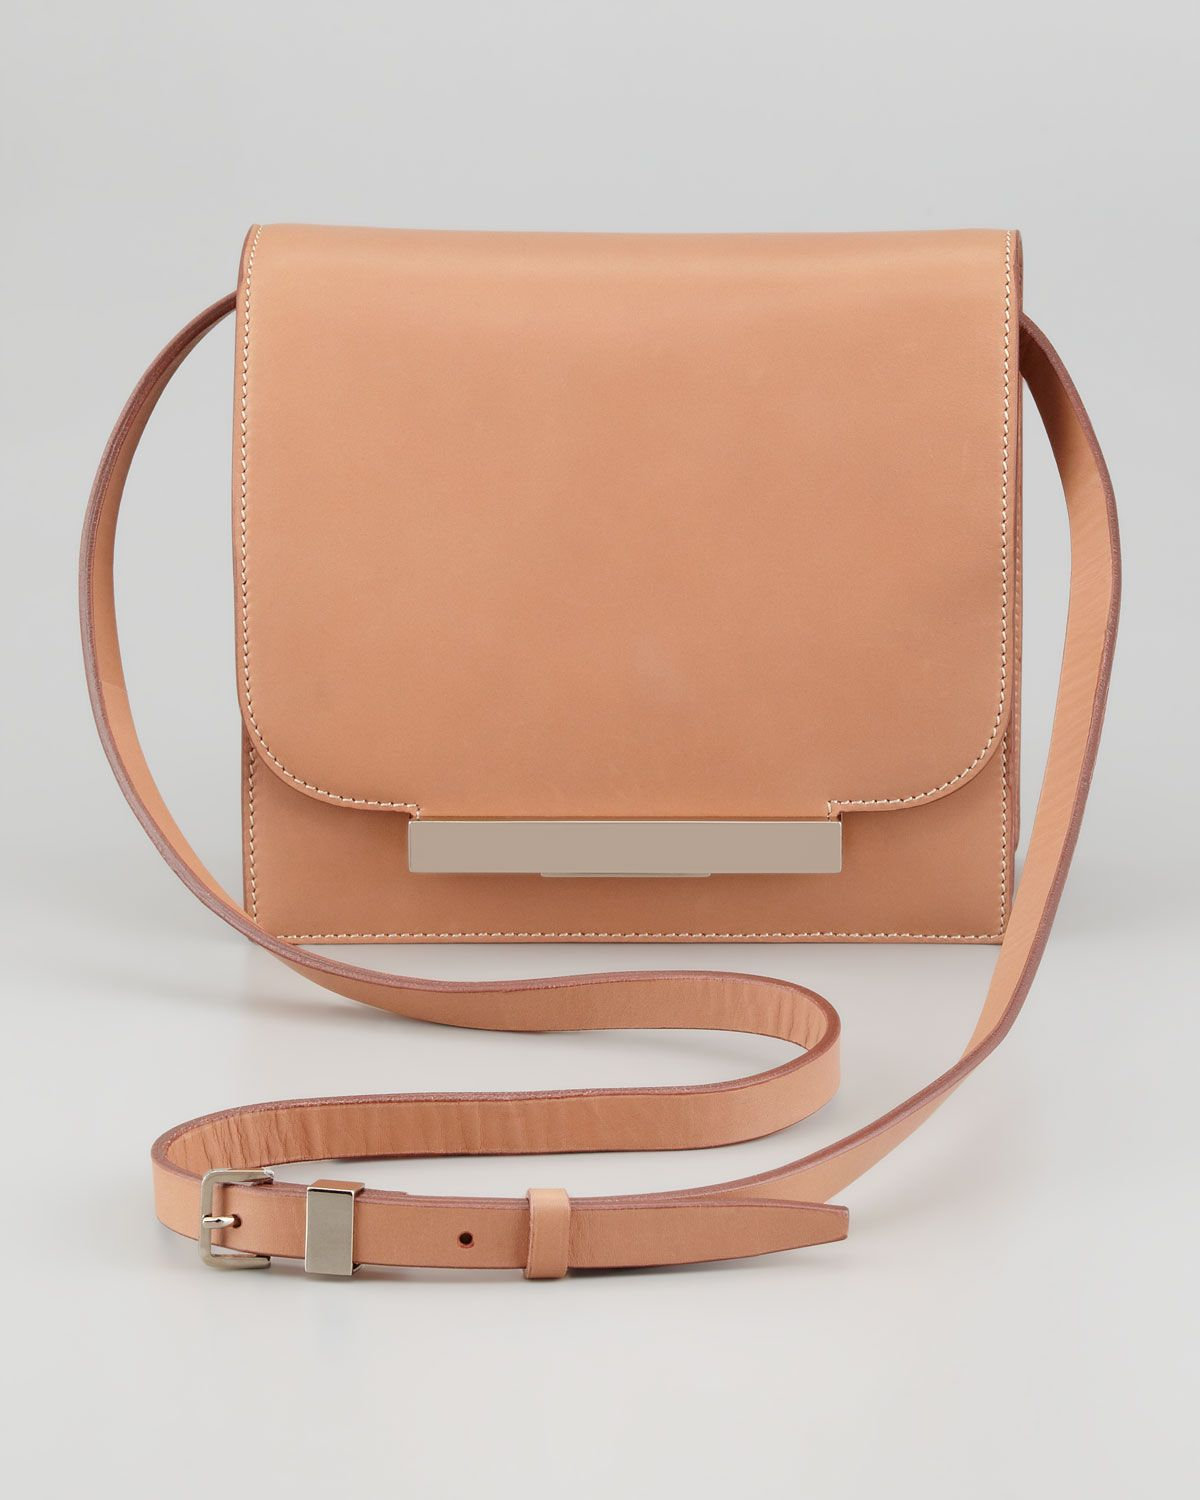 http://harrislove.com/the-row-classic-leather-shoulder-bag-brown-p ...